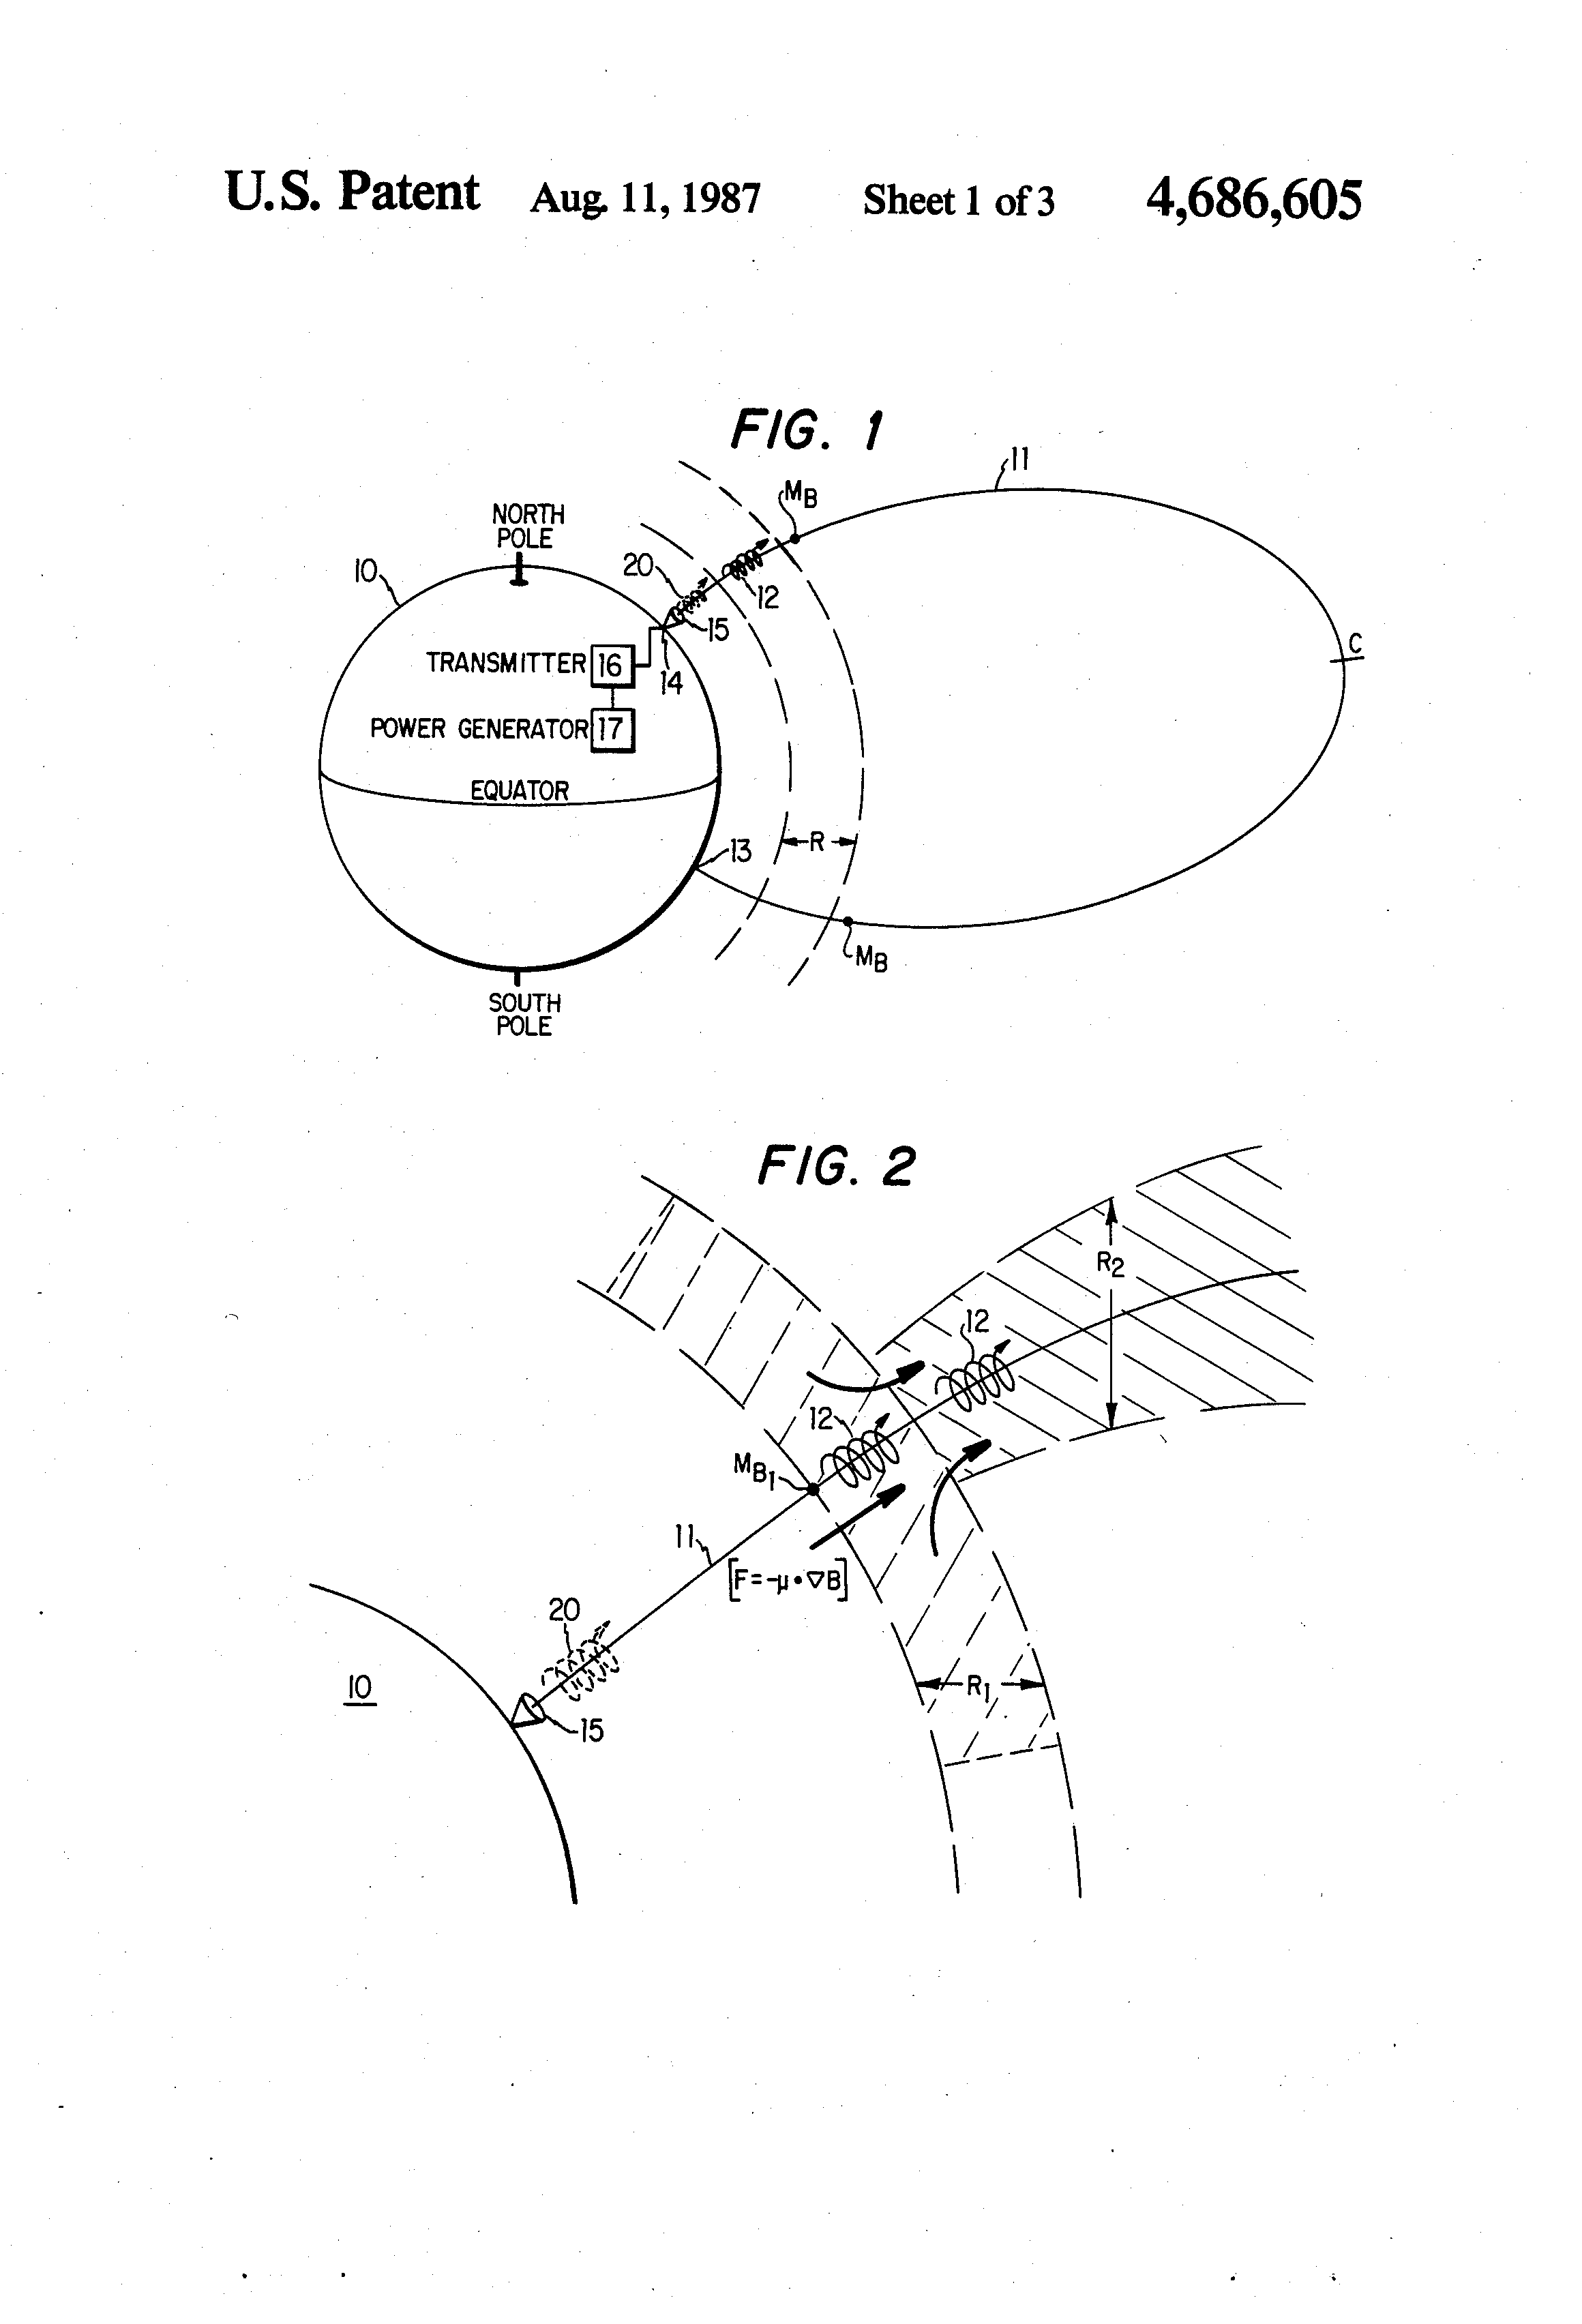 Method and apparatus for altering a region in the earth's atmosphere, ionosphere, and/or magnetosphere - Patent US 4,686,605 US4686605-1